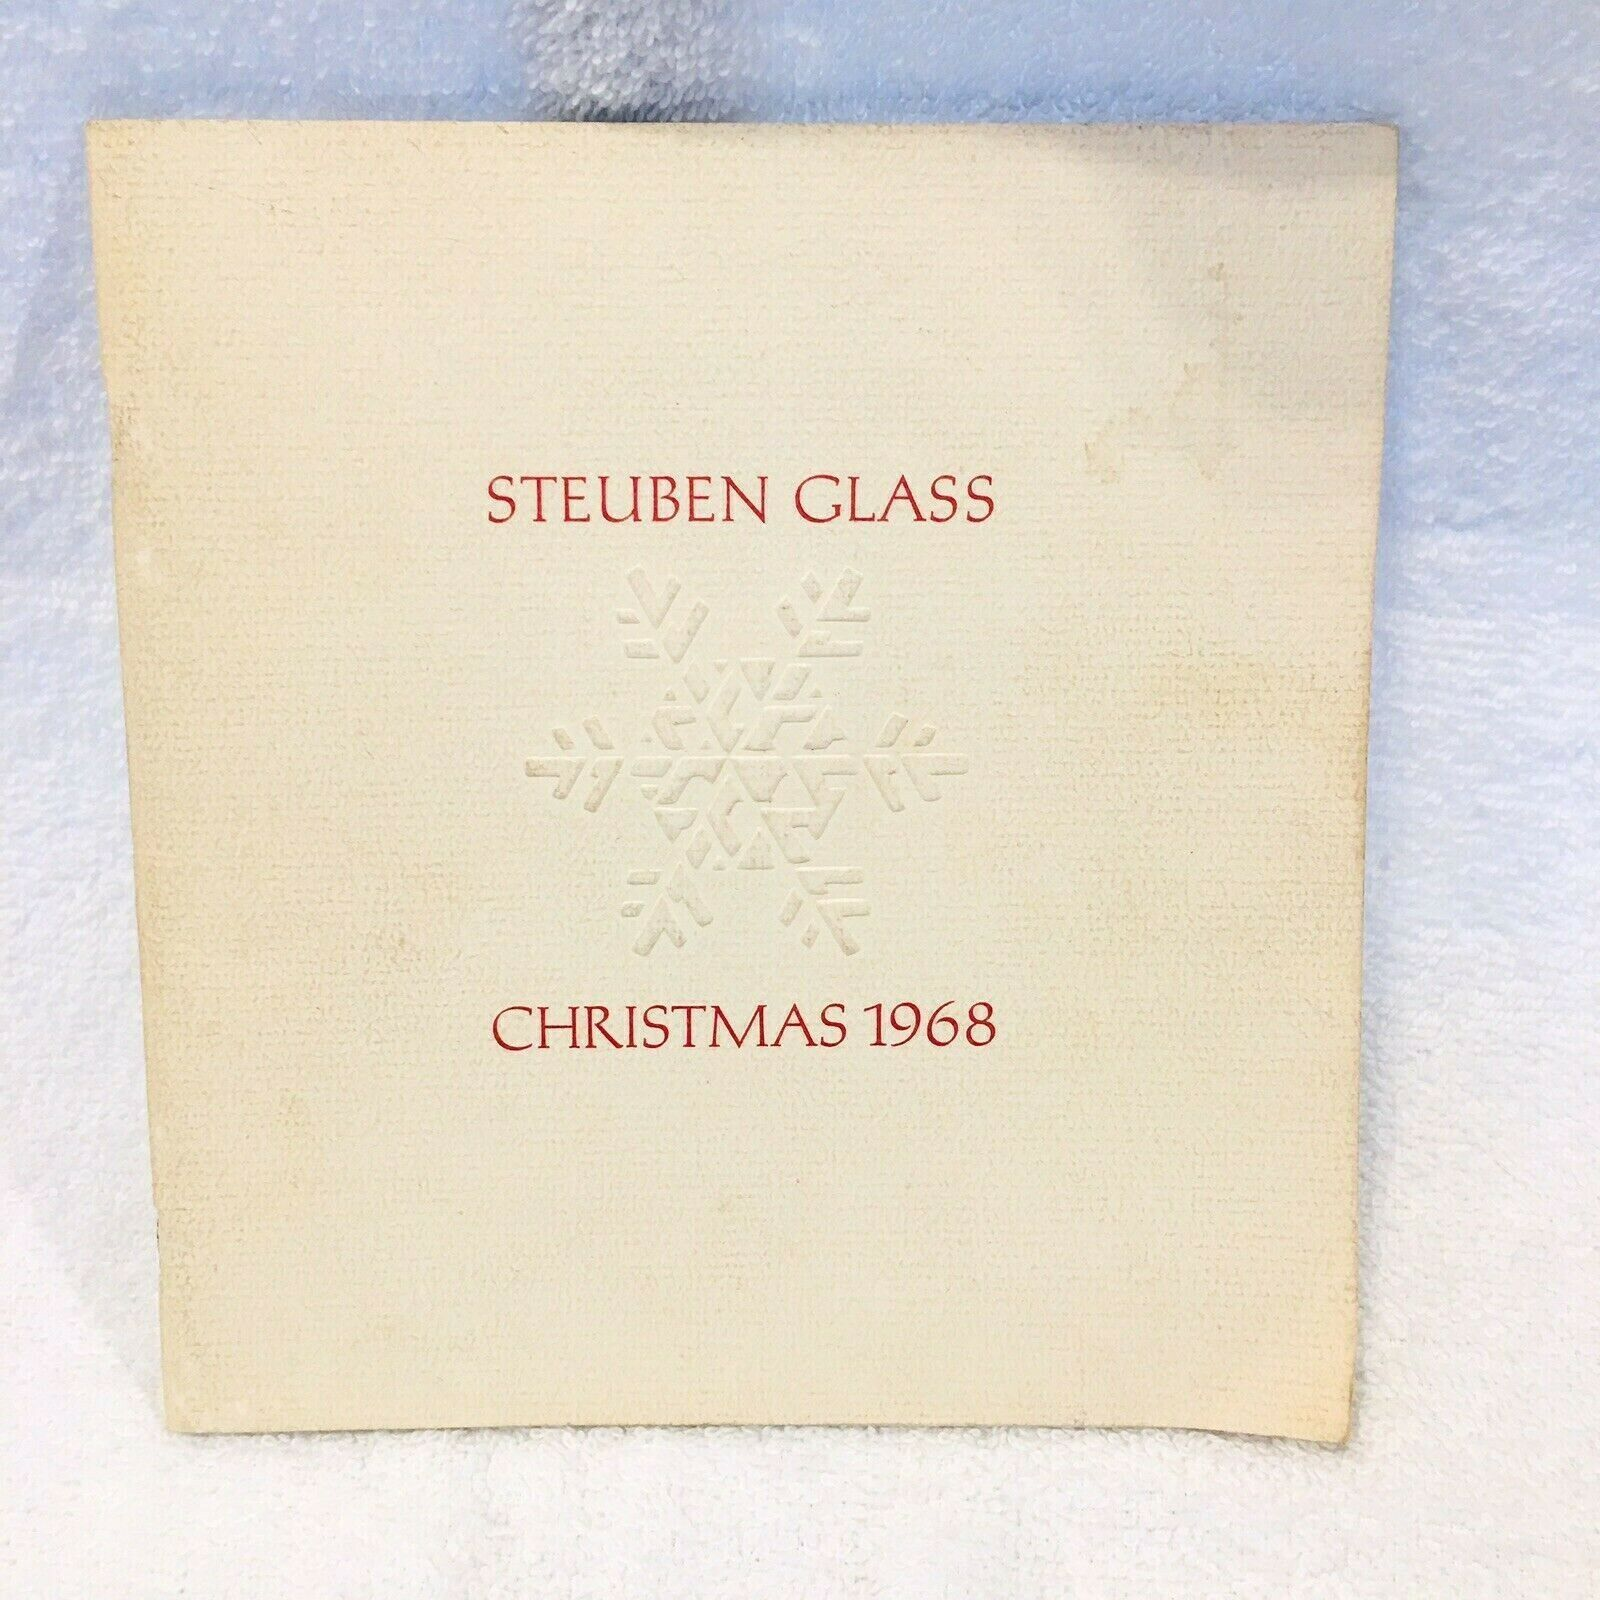 Steuben Glass Christmas 1968 Photo Gift Guide Book  T100 - $36.14